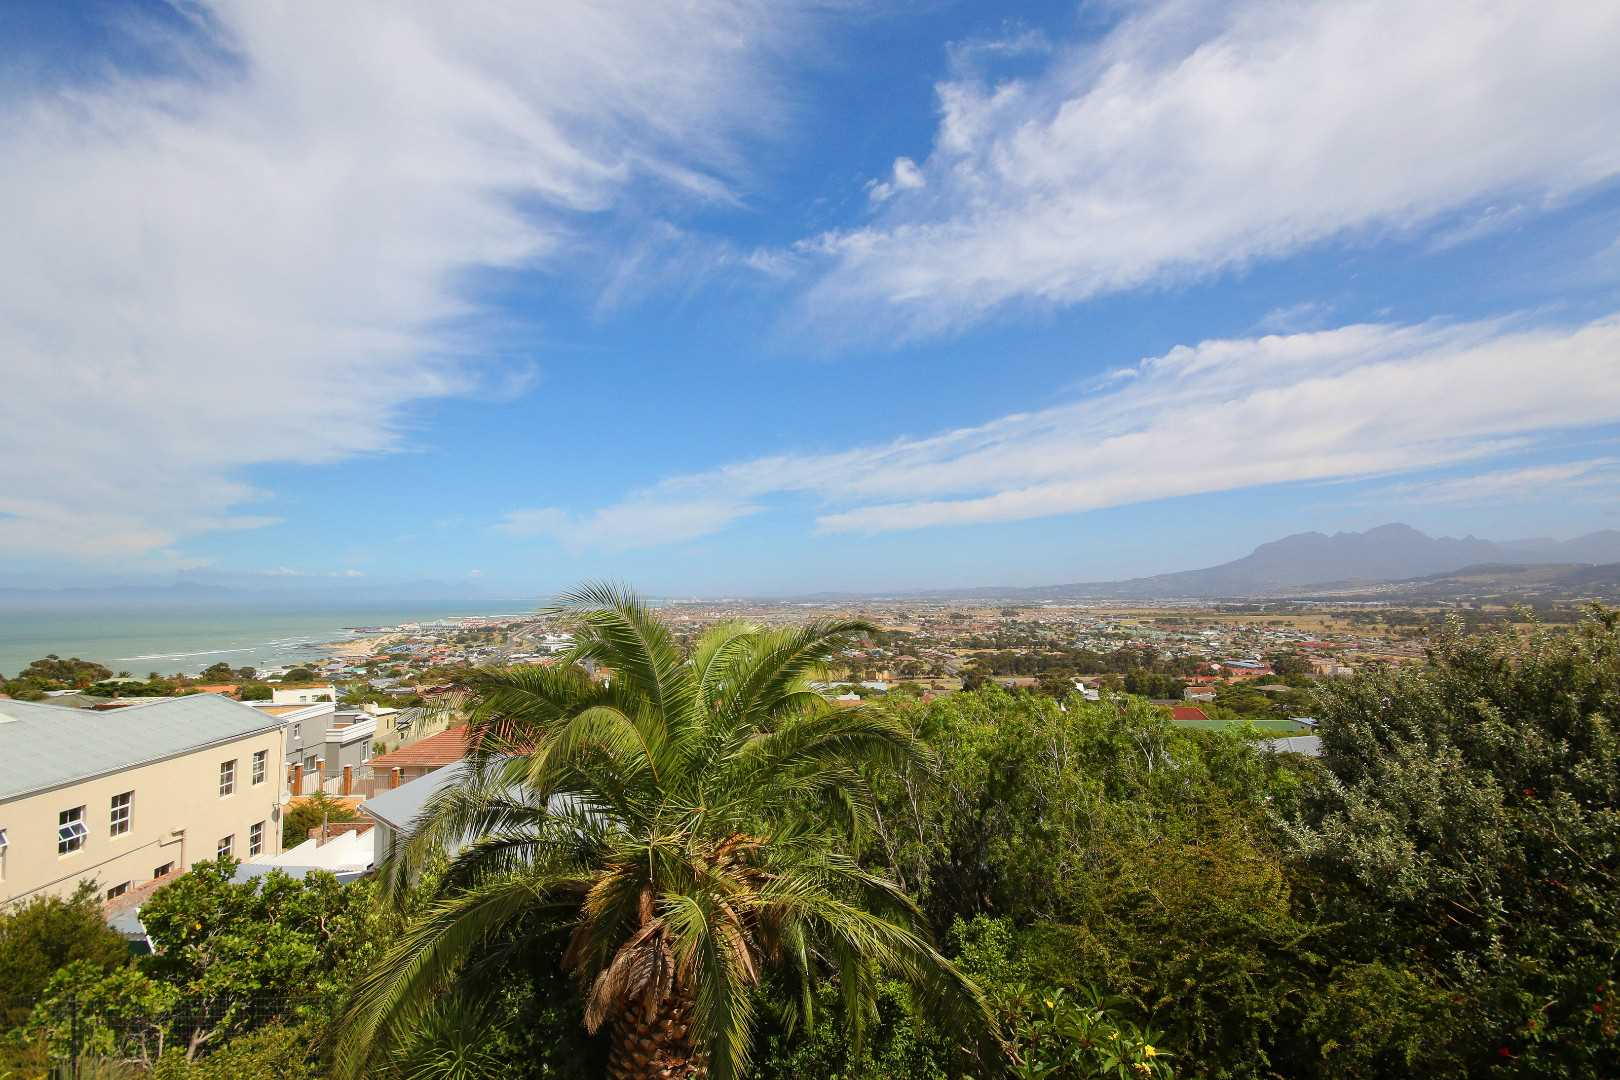 Forward view over Gordon's Bay town and Helderberg Mountain in Somerset West